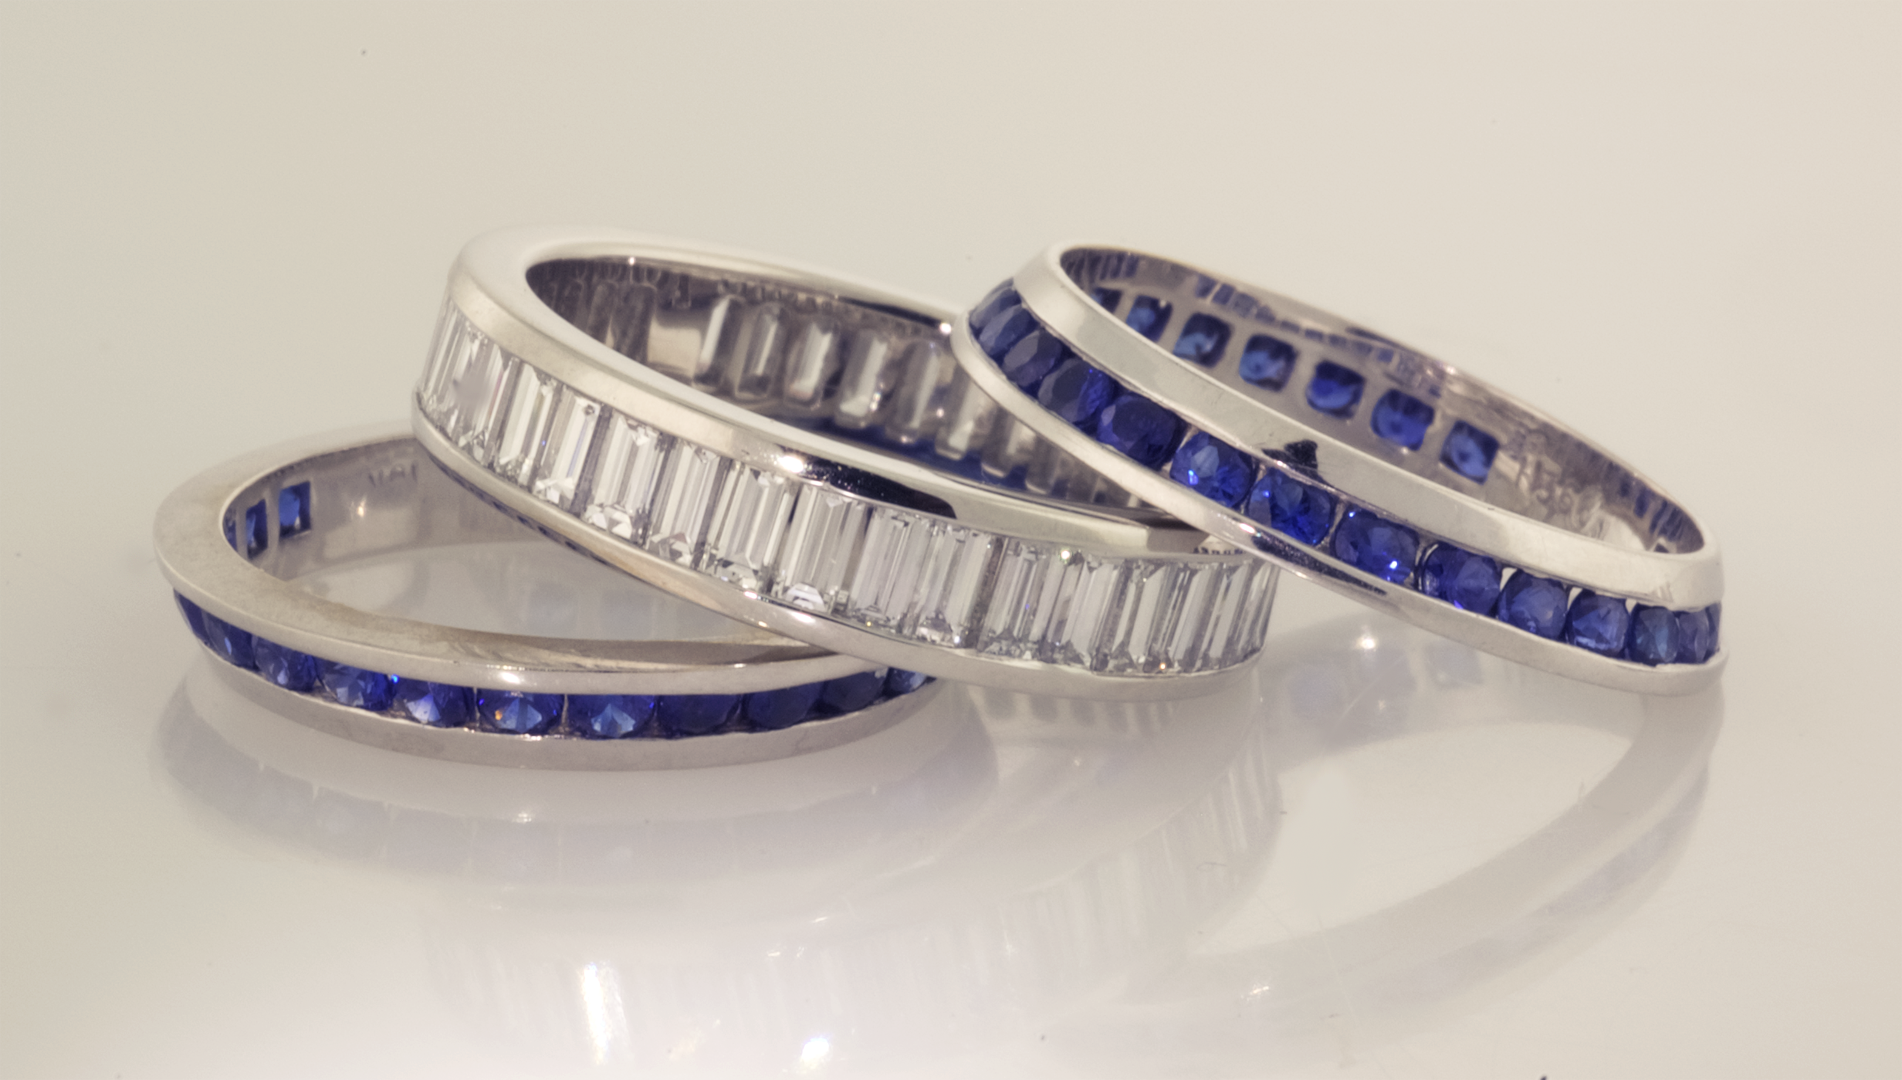 baguette bands next diamond platinum wedding product anniversary previous ctw eternity band ring